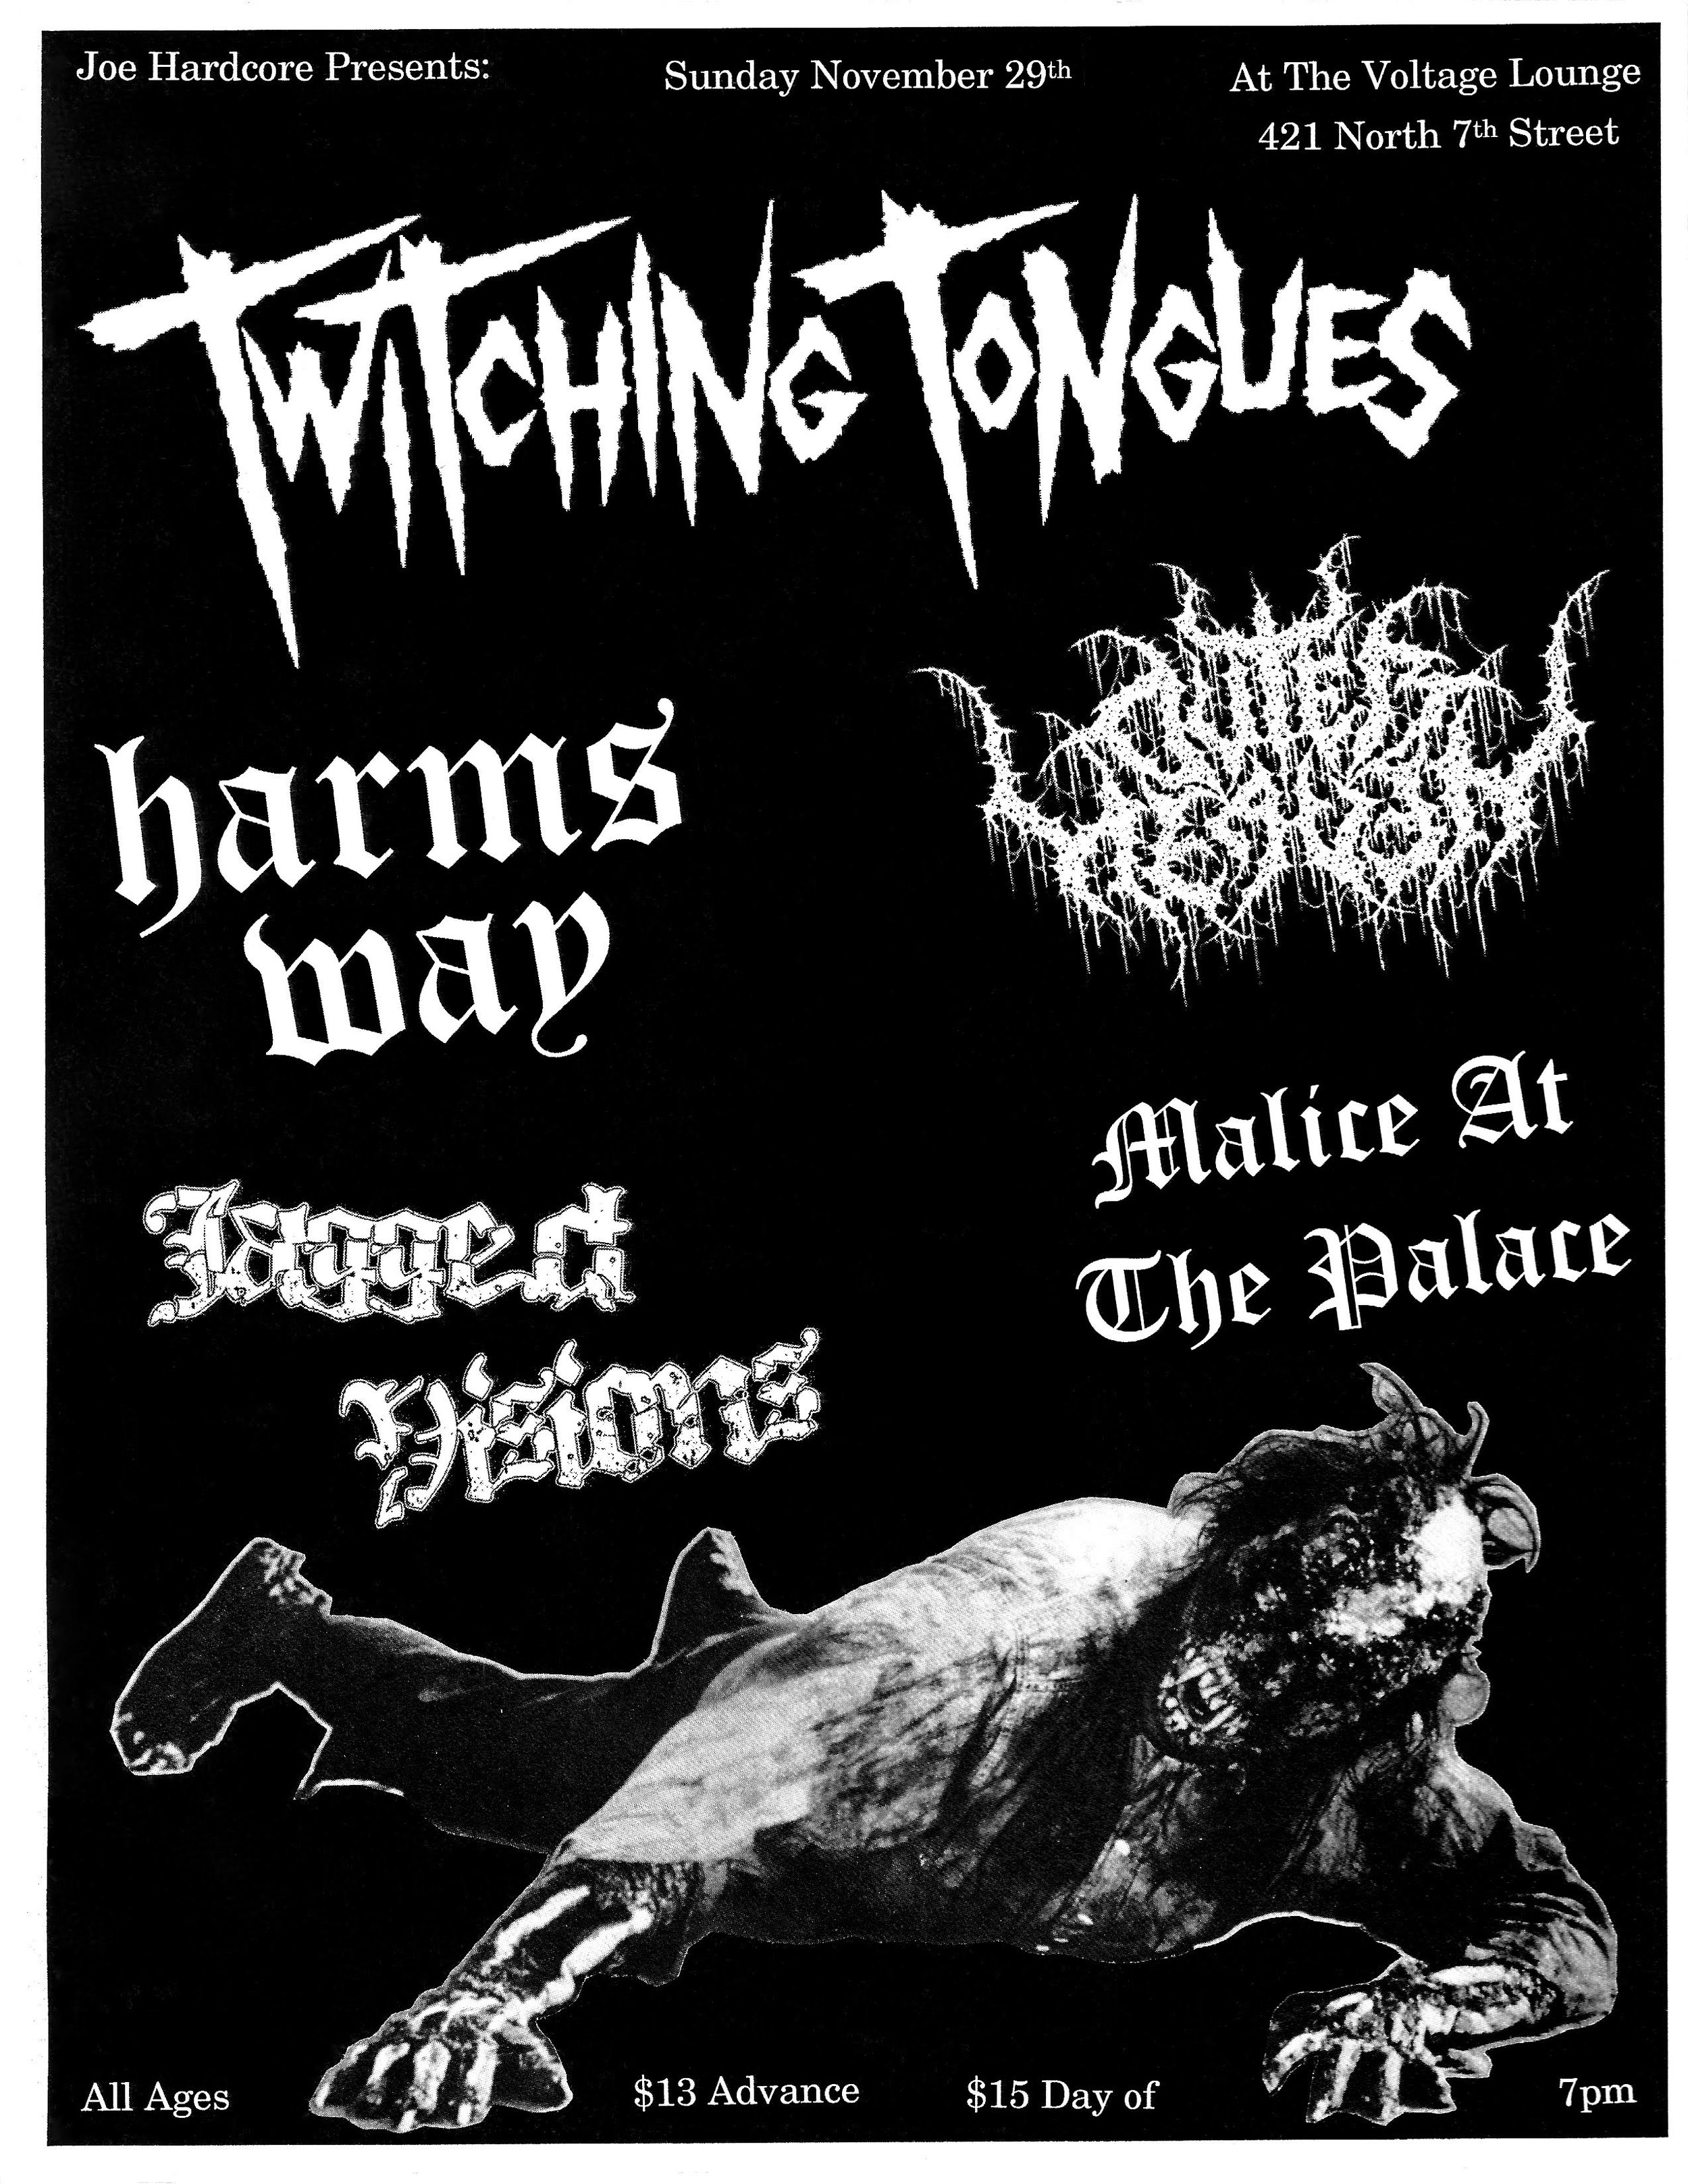 5) Twitching Tongues - The image for this one came from that same disintegrating horror film book that I mentioned earlier. I went all out and made big poster sized copies for this gig, and while I was waiting to pay I overheard a mother in line behind me tell her son that she thought the image was disgusting, so I knew I was doing something right. I also recall someone I strongly dislike catching a beating at this gig for doing some grimy shit (and although I don't normally condone violence, I can't say that I was too mad at that).